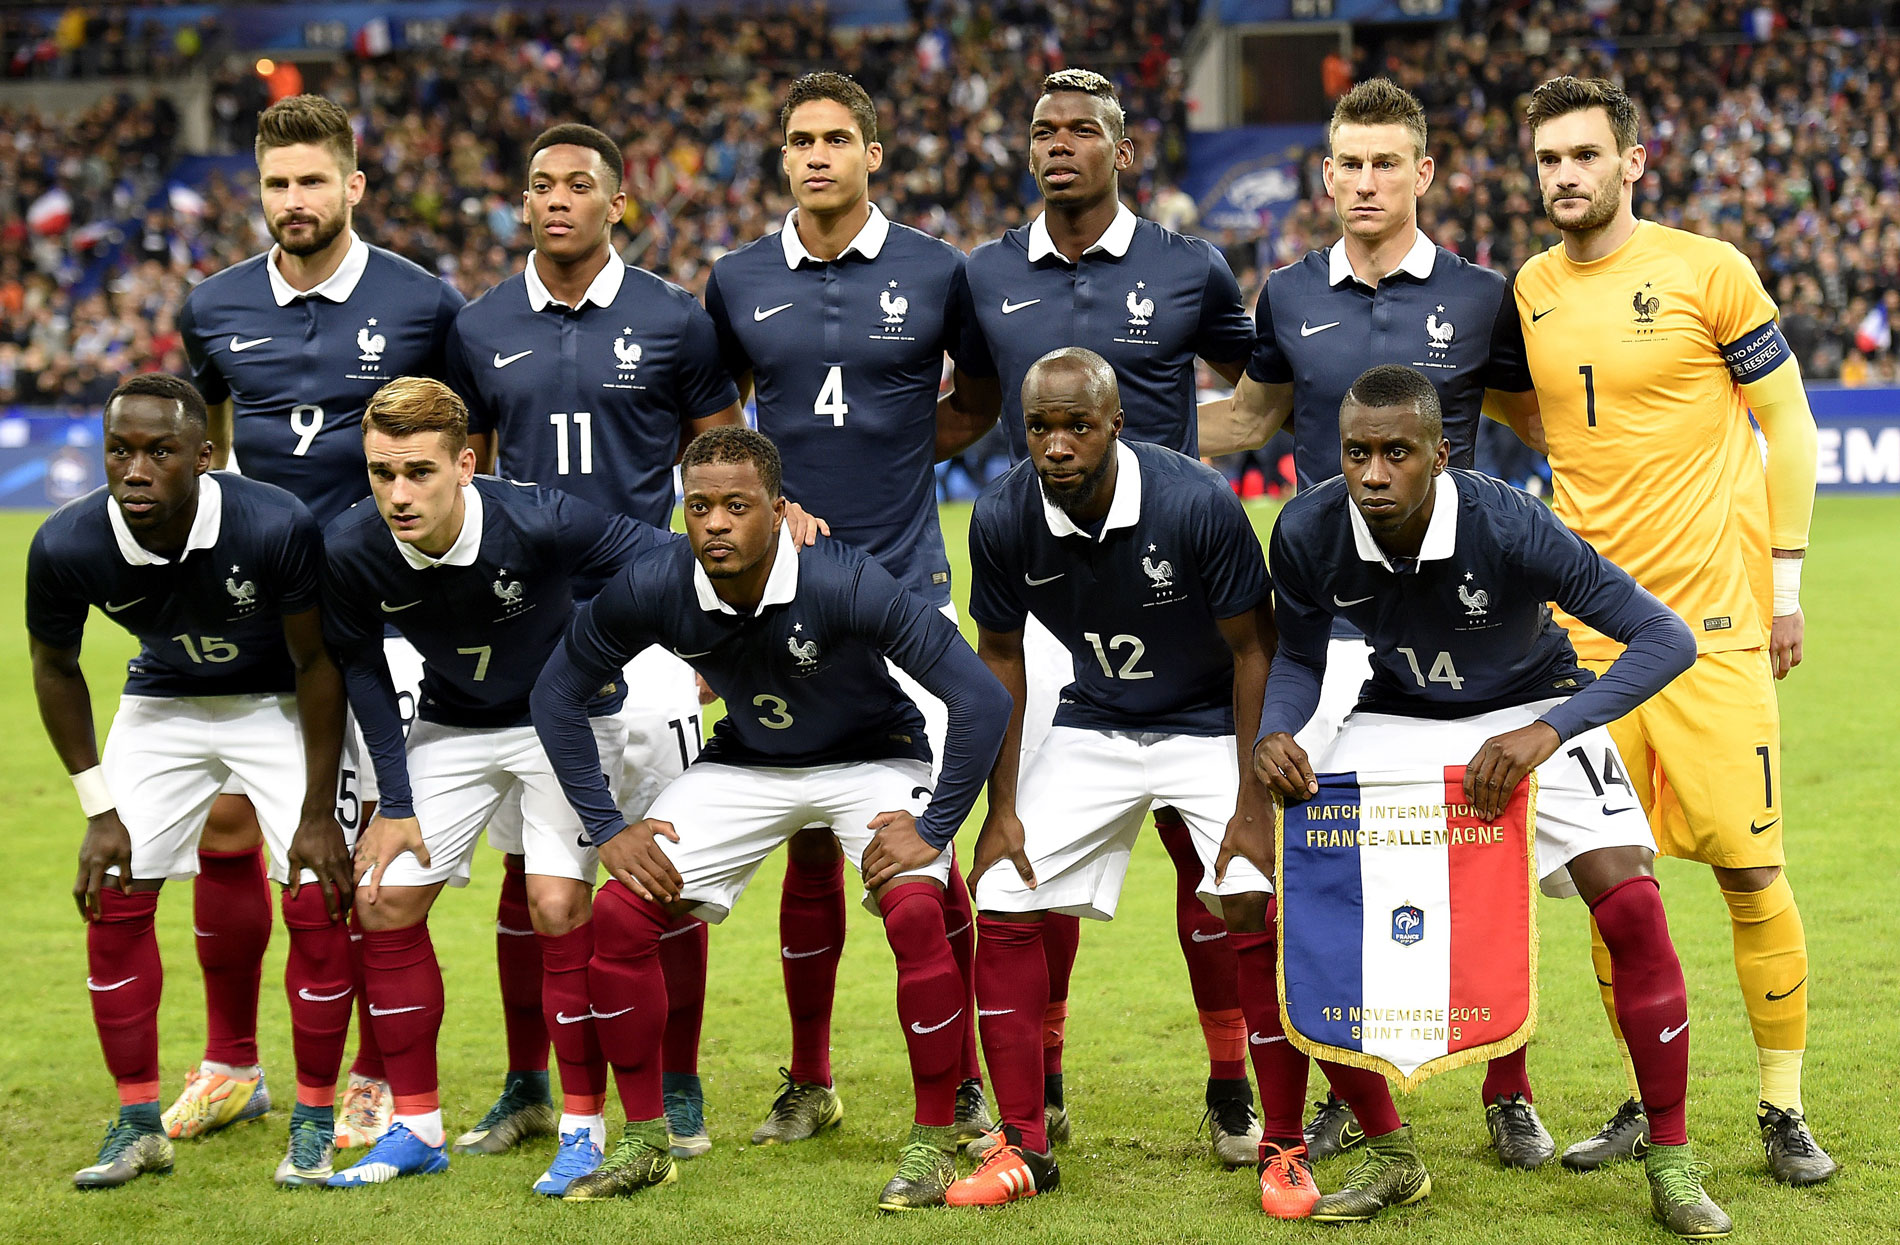 (up-from L) France's forward Olivier Giroud, forward Anthony Martial, defender Raphael Varane, midfielder Paul Pogba, defender Laurent Koscielny and goalkeeper Hugo Lloris, (down-from L) France's defender Bacary Sagna, forward Antoine Griezmann, defender Patrice Evra, defender Eliaquim Mangala and  midfielder Blaise Matuidi pose during the friendly football match France vs Germany, on November 13, 2015 at the Stade de France stadium in Saint-Denis, north of Paris. AFP PHOTO / FRANCK FIFE        (Photo credit should read FRANCK FIFE/AFP/Getty Images)